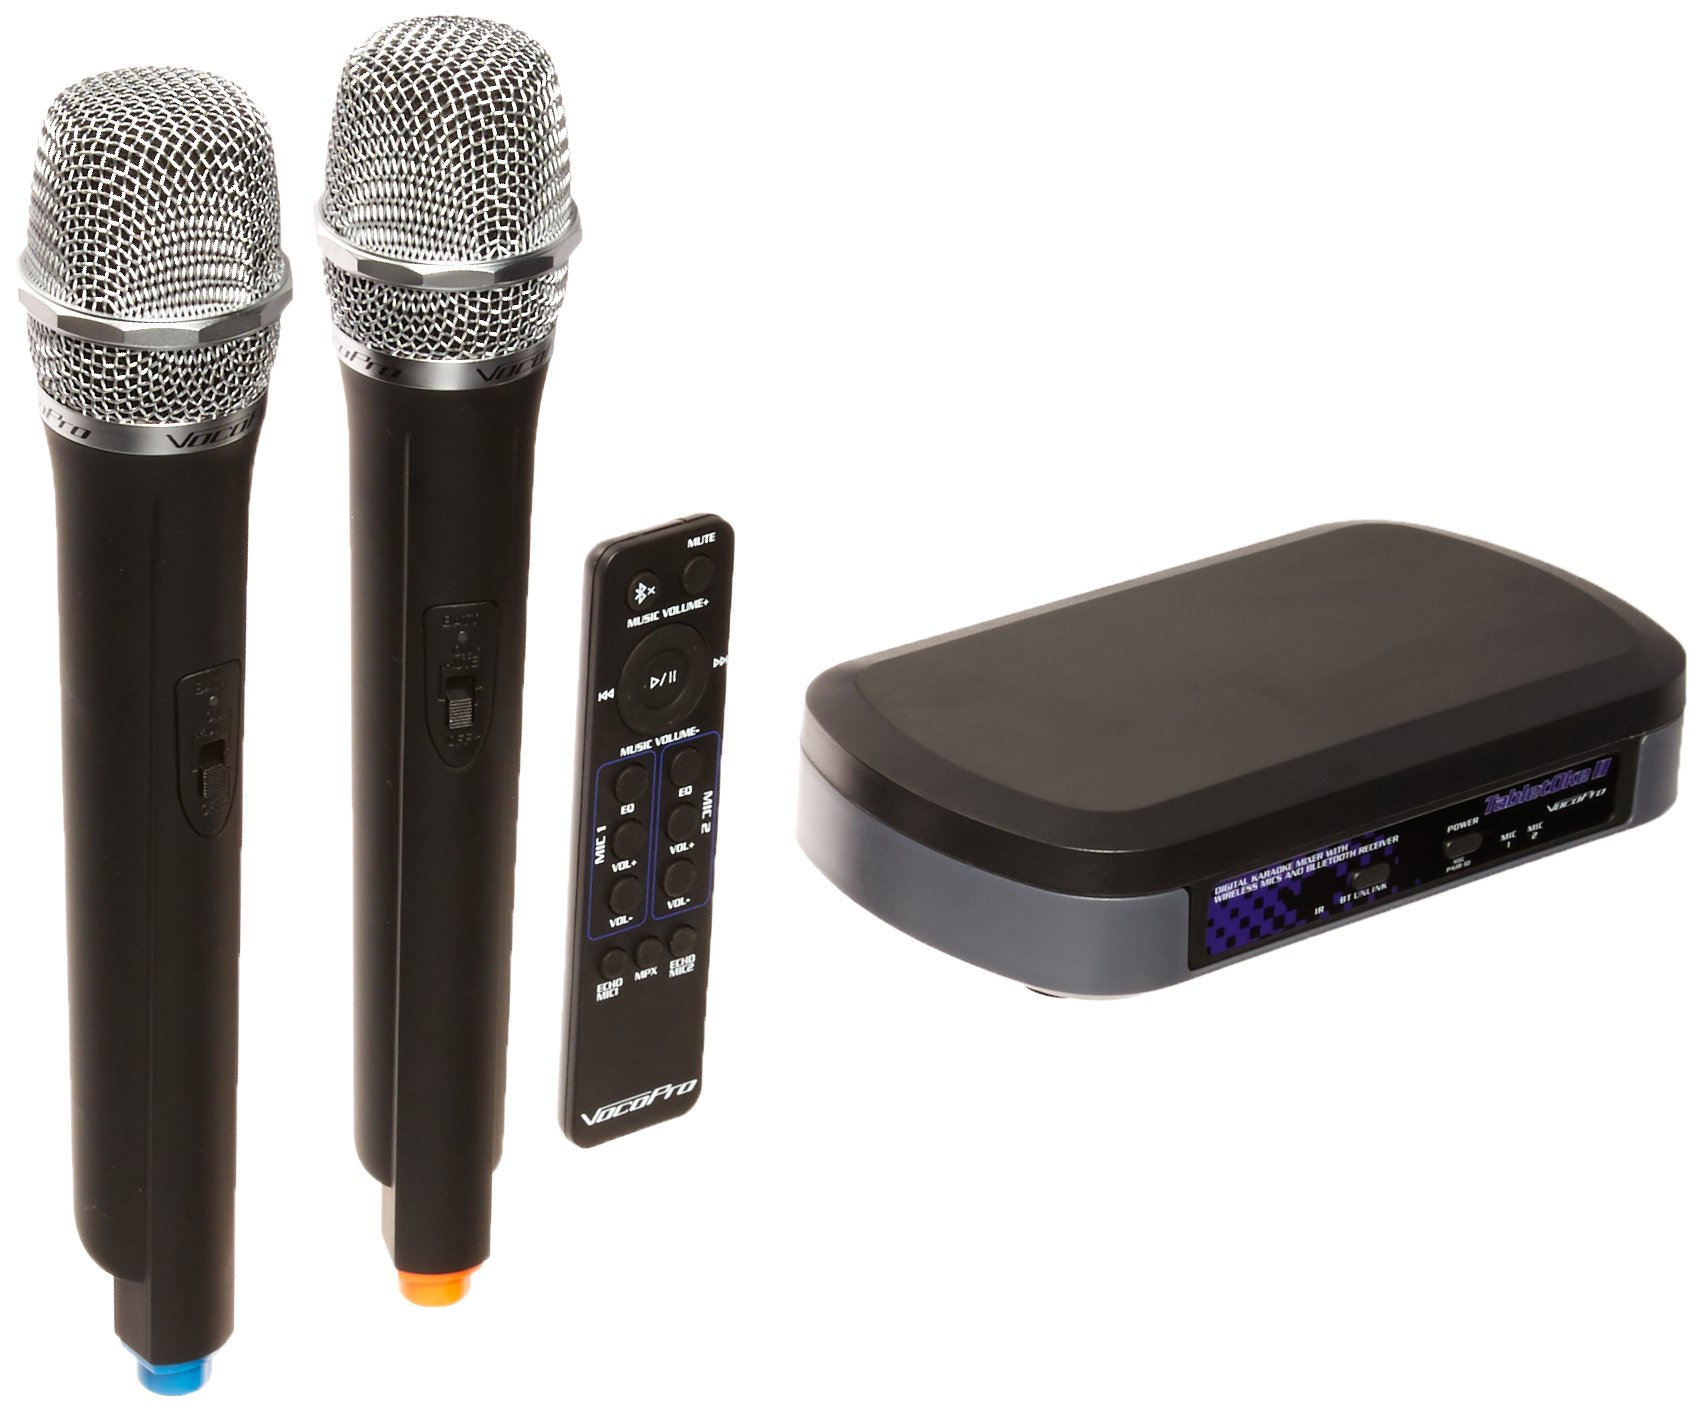 VocoPro Digital Karaoke Mixer with Wireless Mics and Bluetooth Receiver (TabletOke-II)